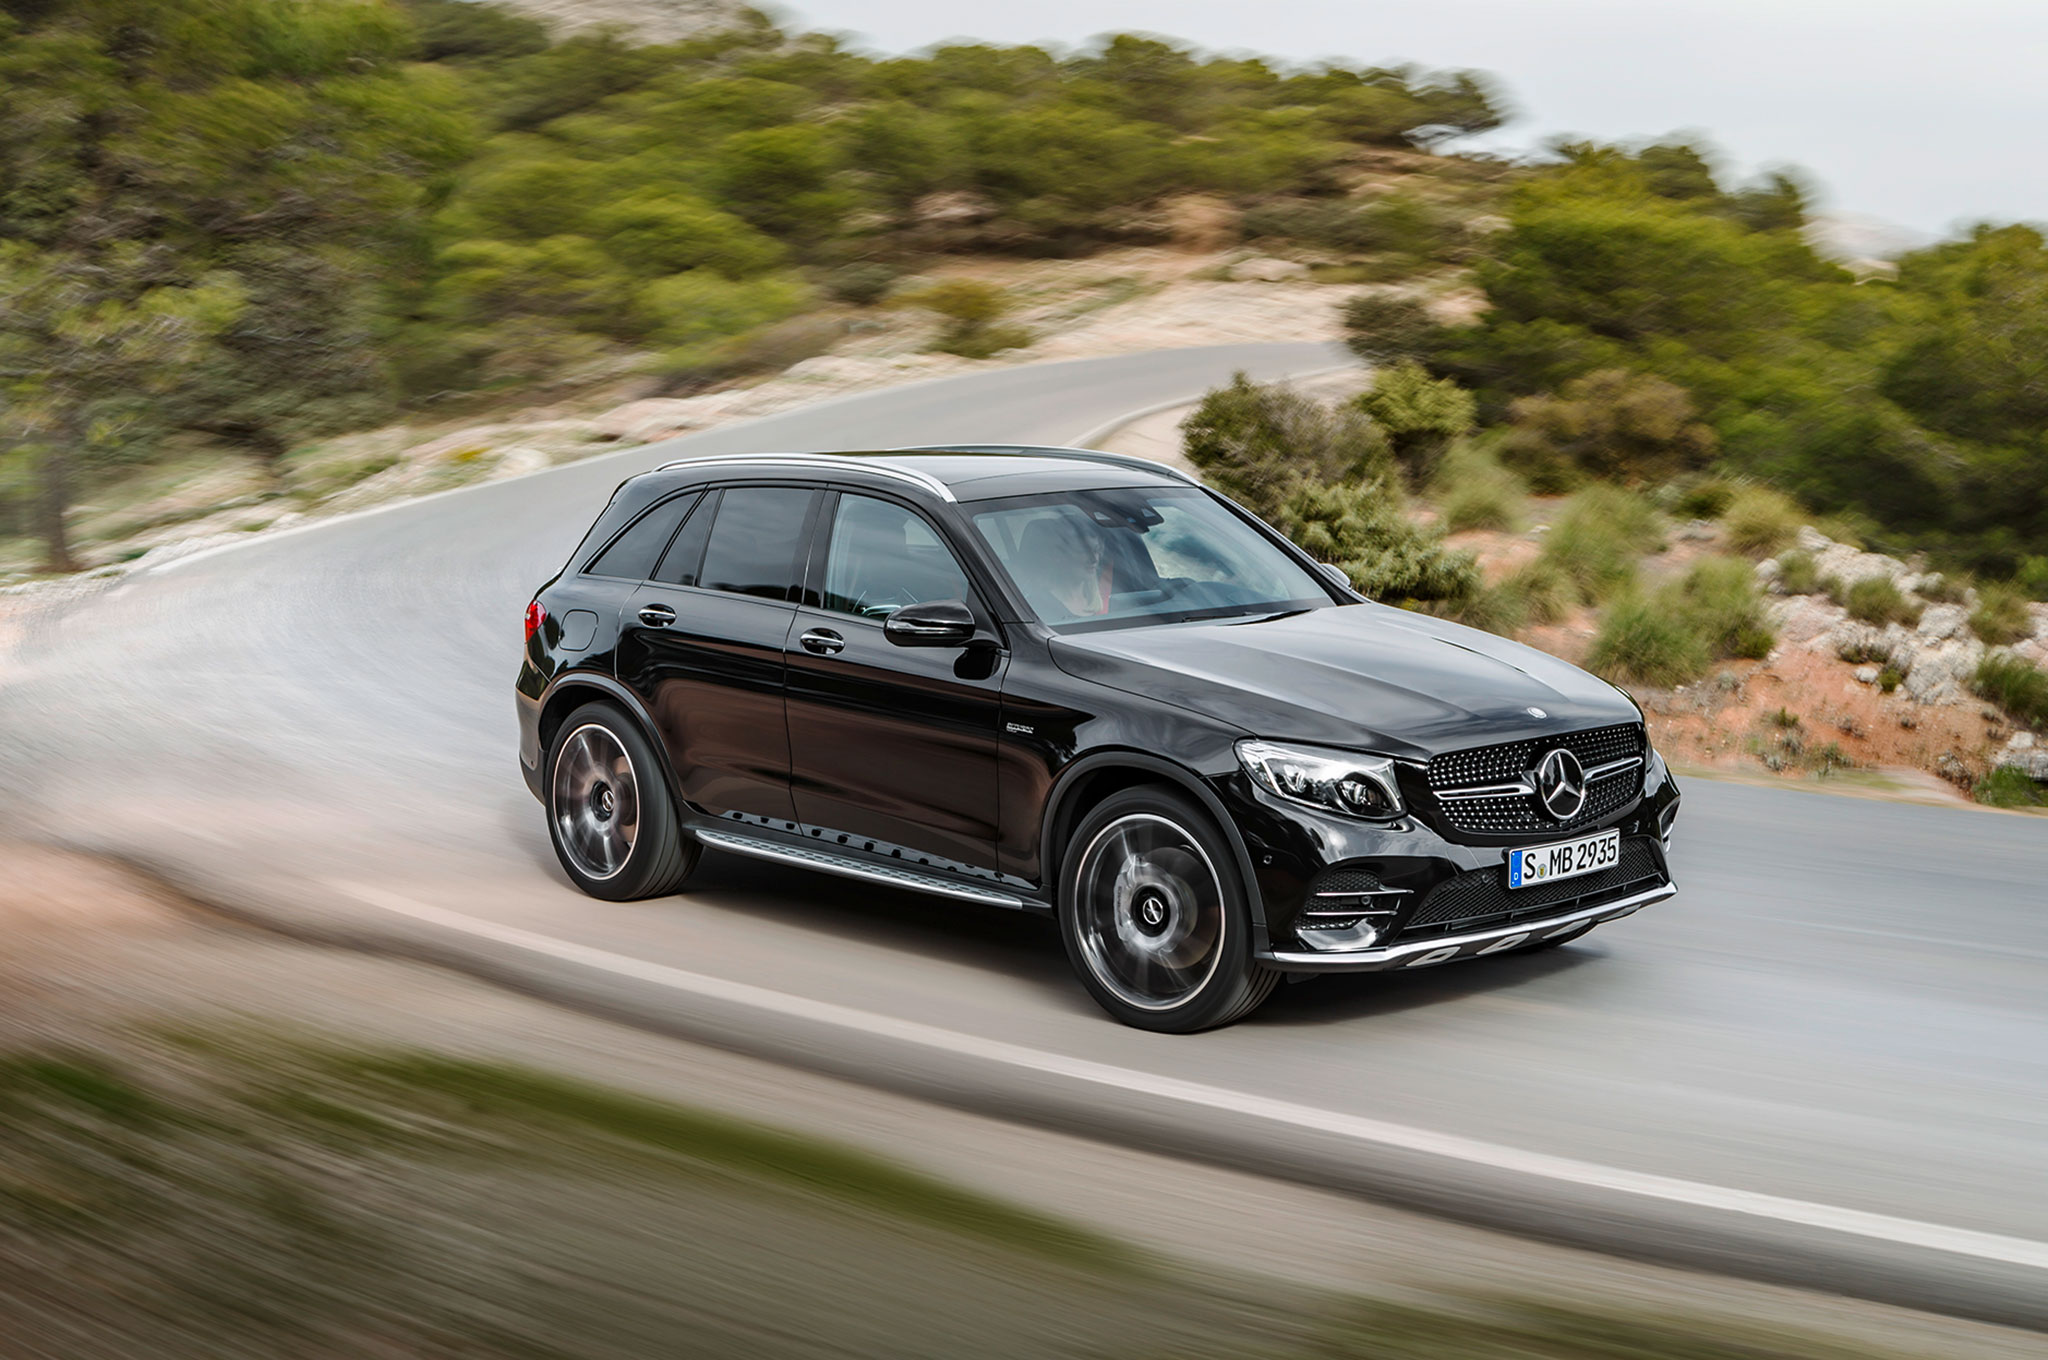 https://st.automobilemag.com/uploads/sites/11/2016/03/2017-Mercedes-AMG-GLC43-front-three-quarter-in-motion-02.jpg